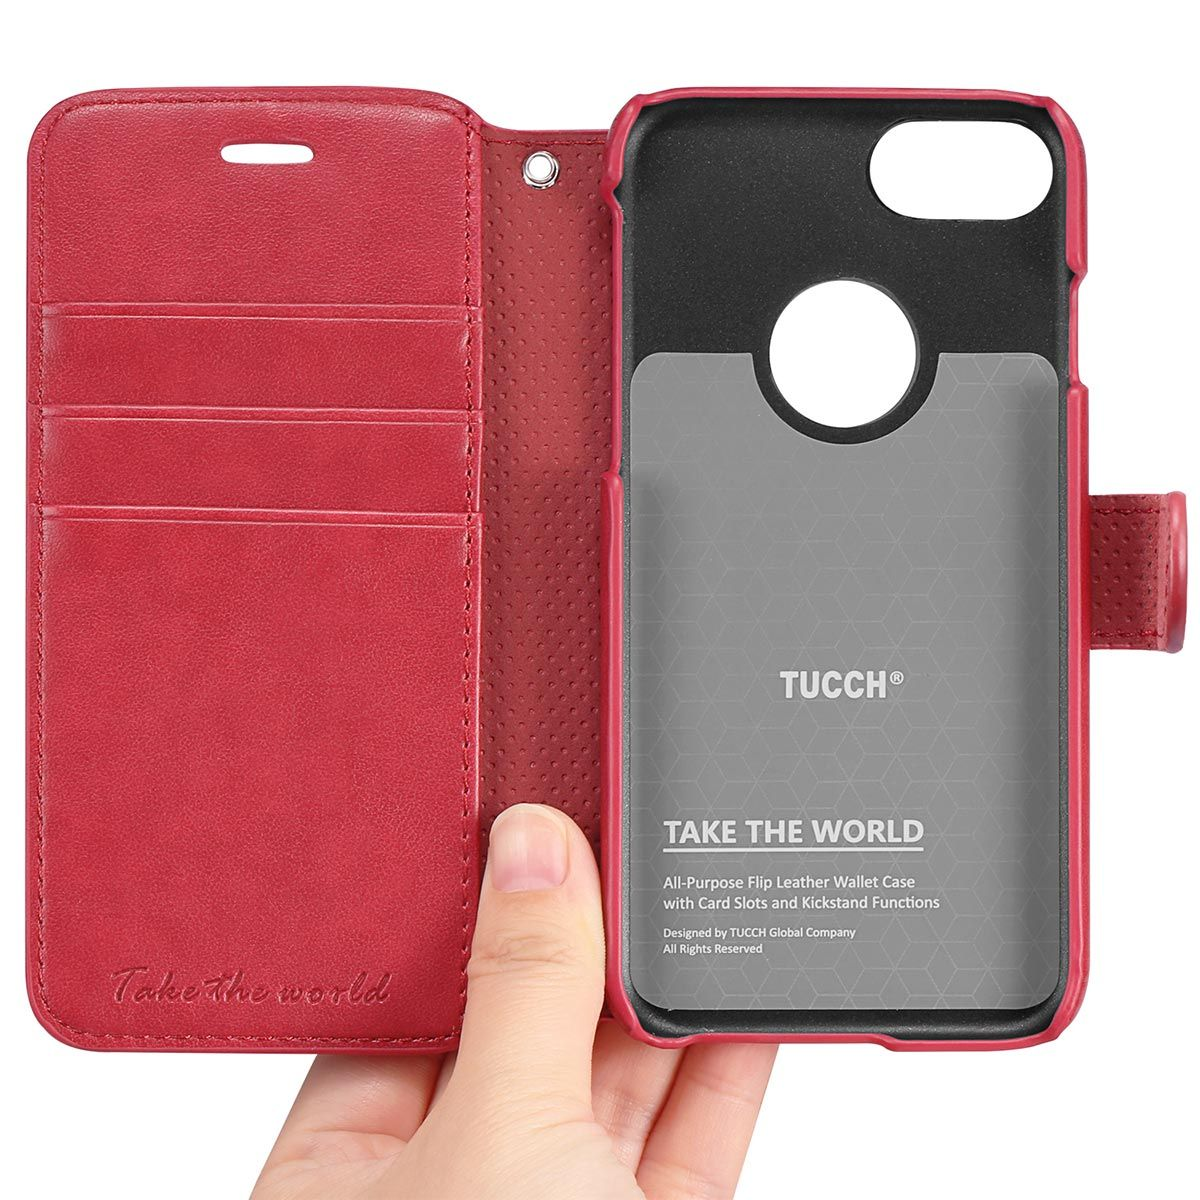 new arrival d8642 55beb TUCCH iPhone 7 Wallet Phone Case, PU Leather Kickstand Case, Red